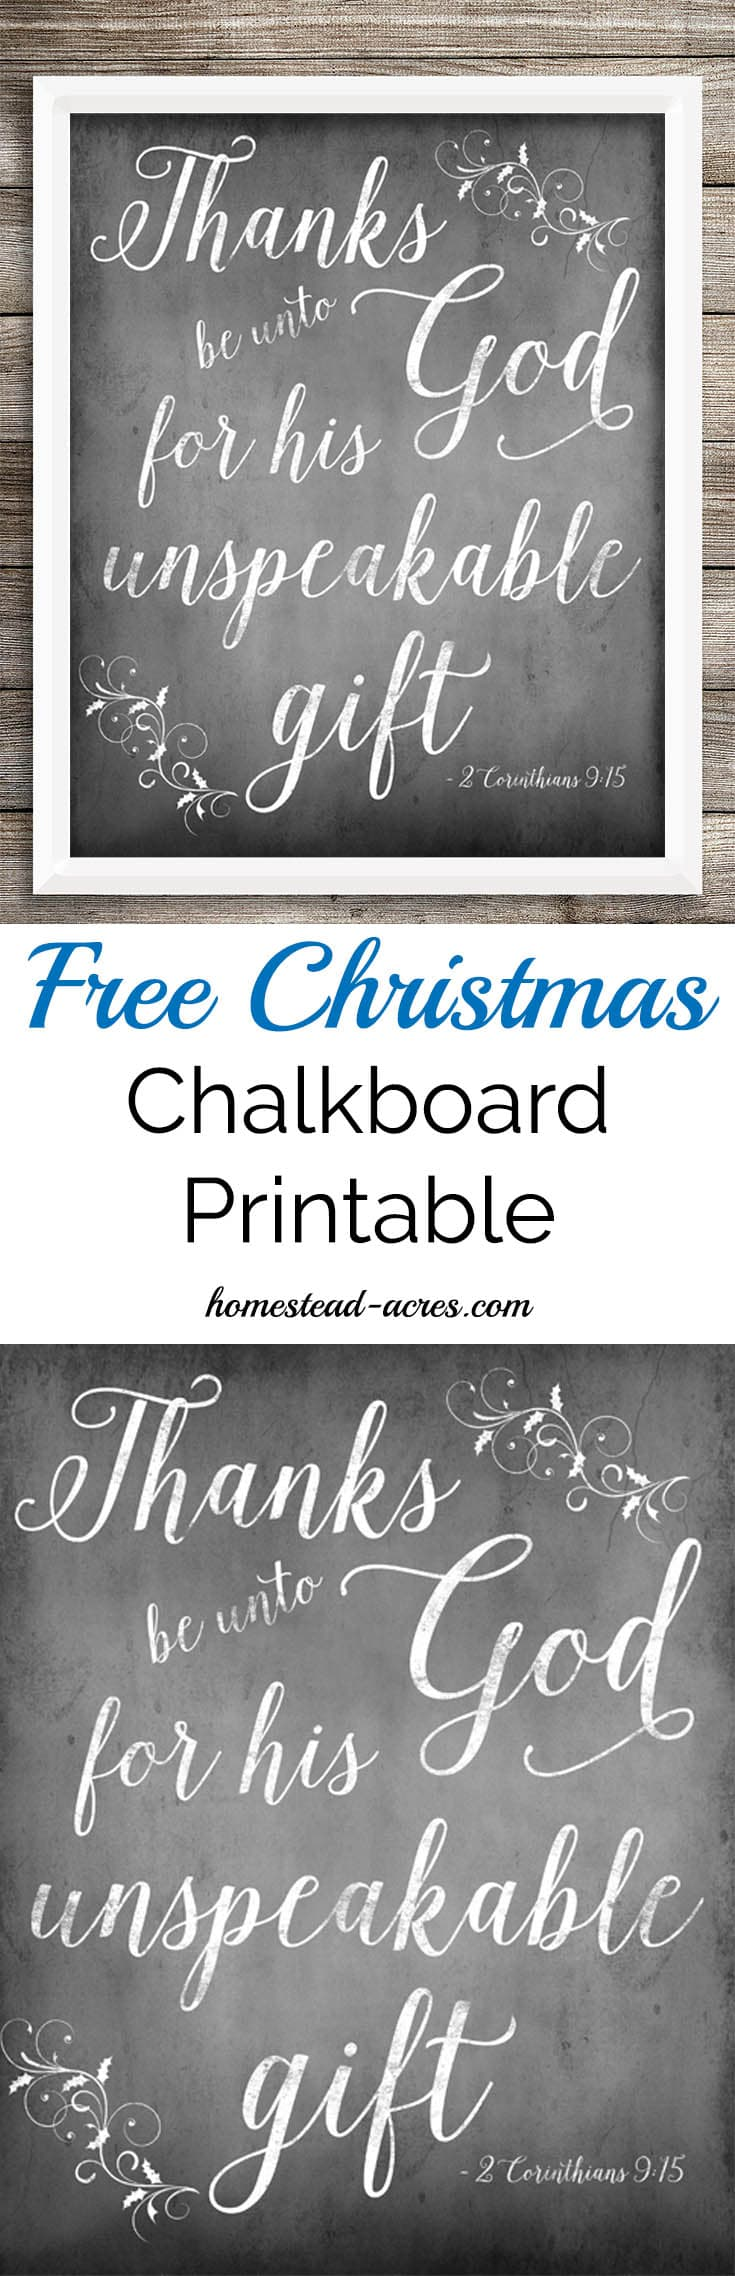 Free Christmas Chalkboard Printable Thanks be unto God for his unspeakable gift Chalkboard Printable | www.homestead-acres.com